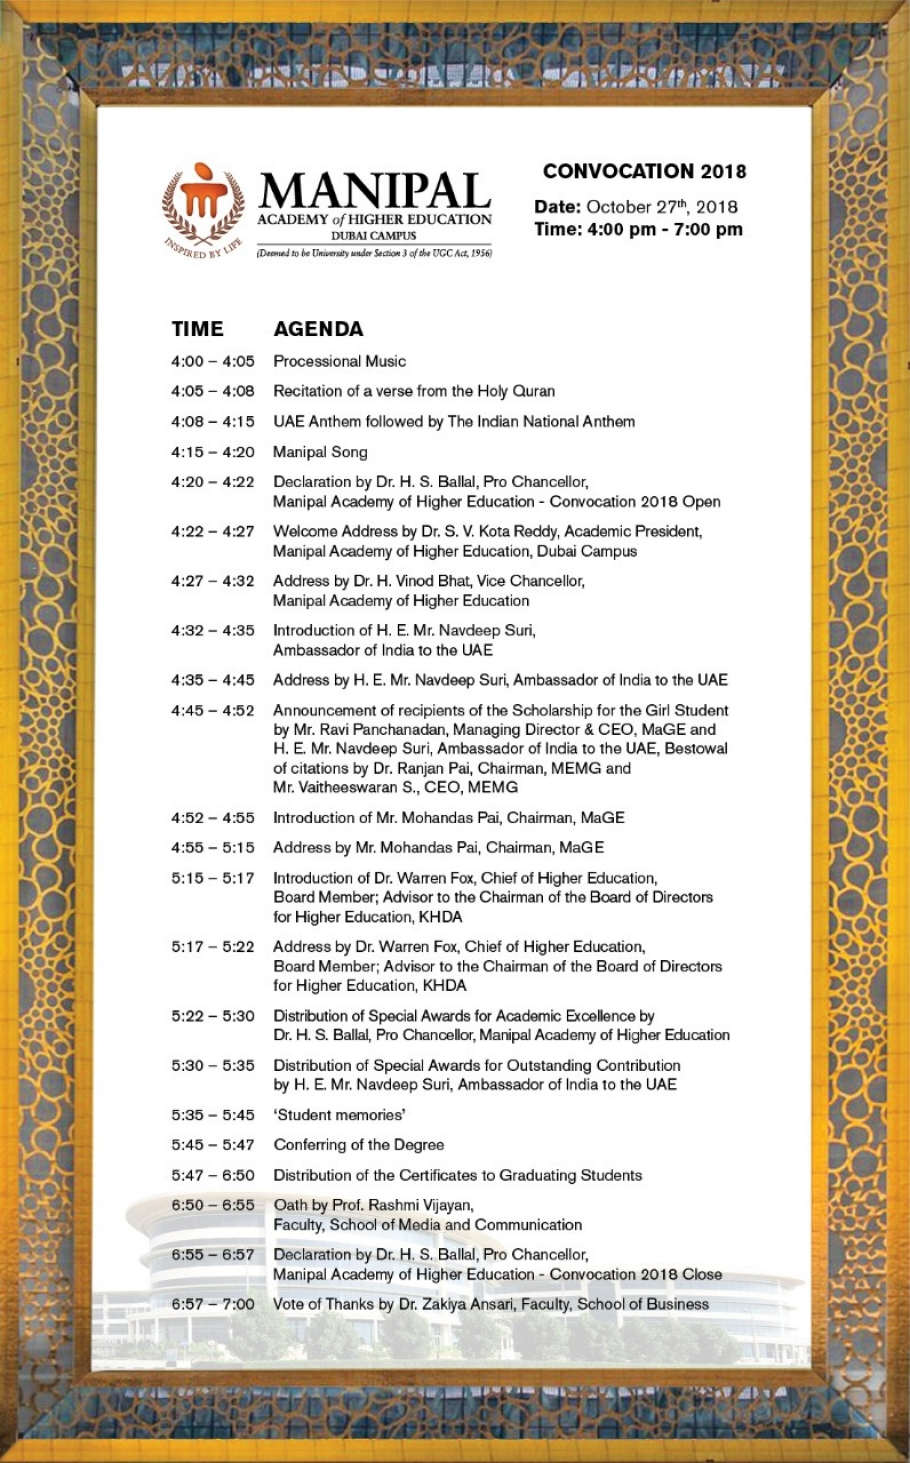 convocation-agenda